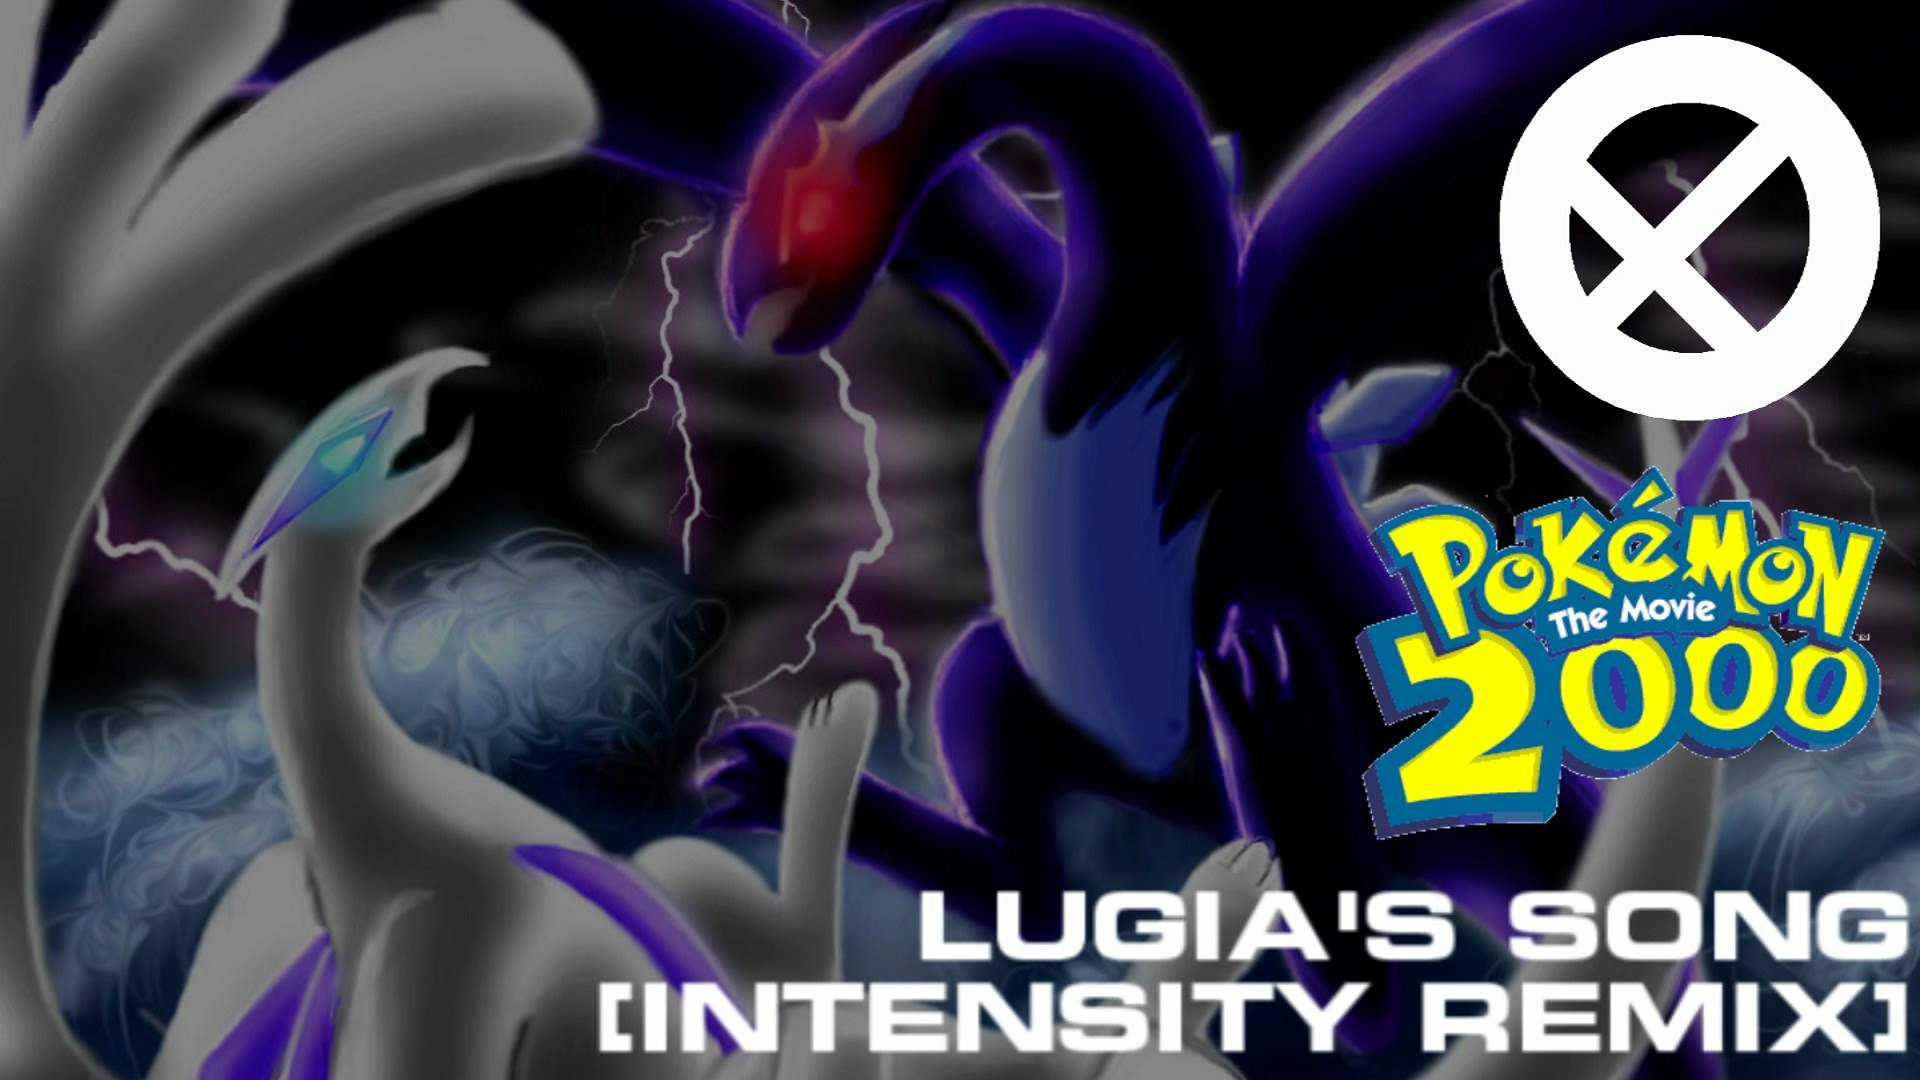 1920x1080 Pokémon 2000 - Lugia's Song (Intensity Remix) (DL Link in desc.) - YouTube